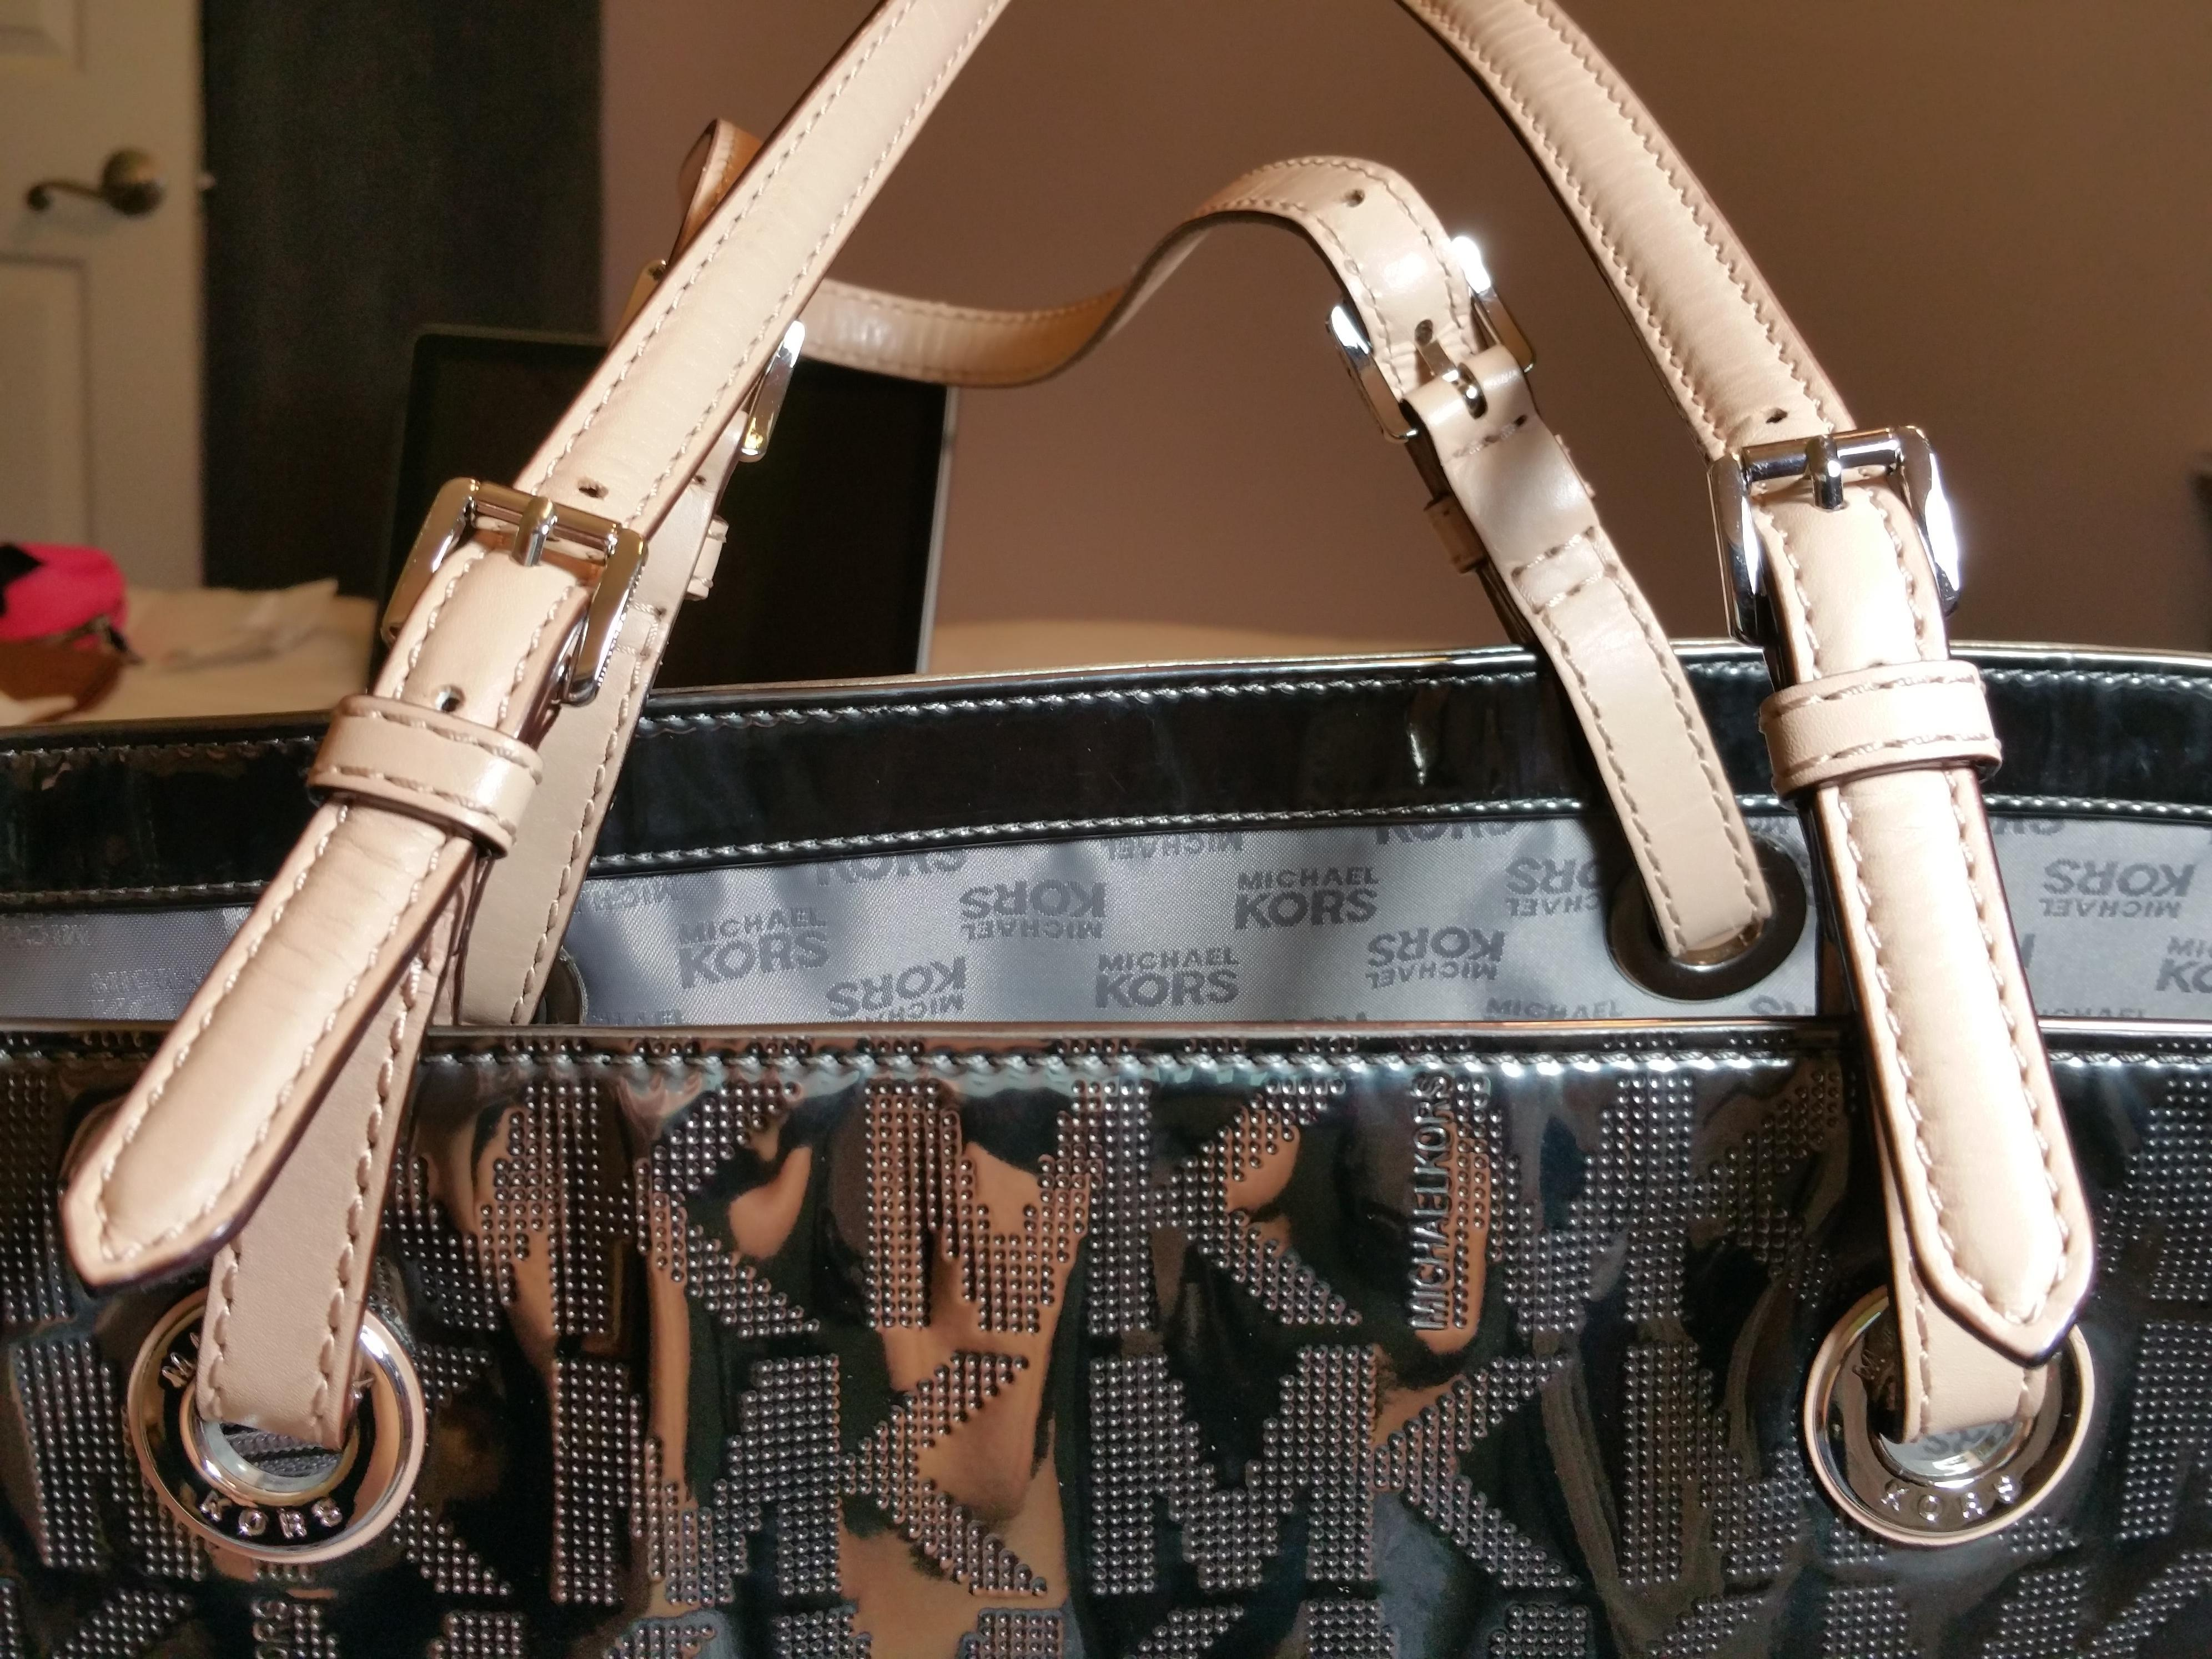 36b3dbd32eb5 ... promo code 1234567 70b8b fbad2 discount code for michael kors shoulder  bag. 123456 1c1b4 b6bdb